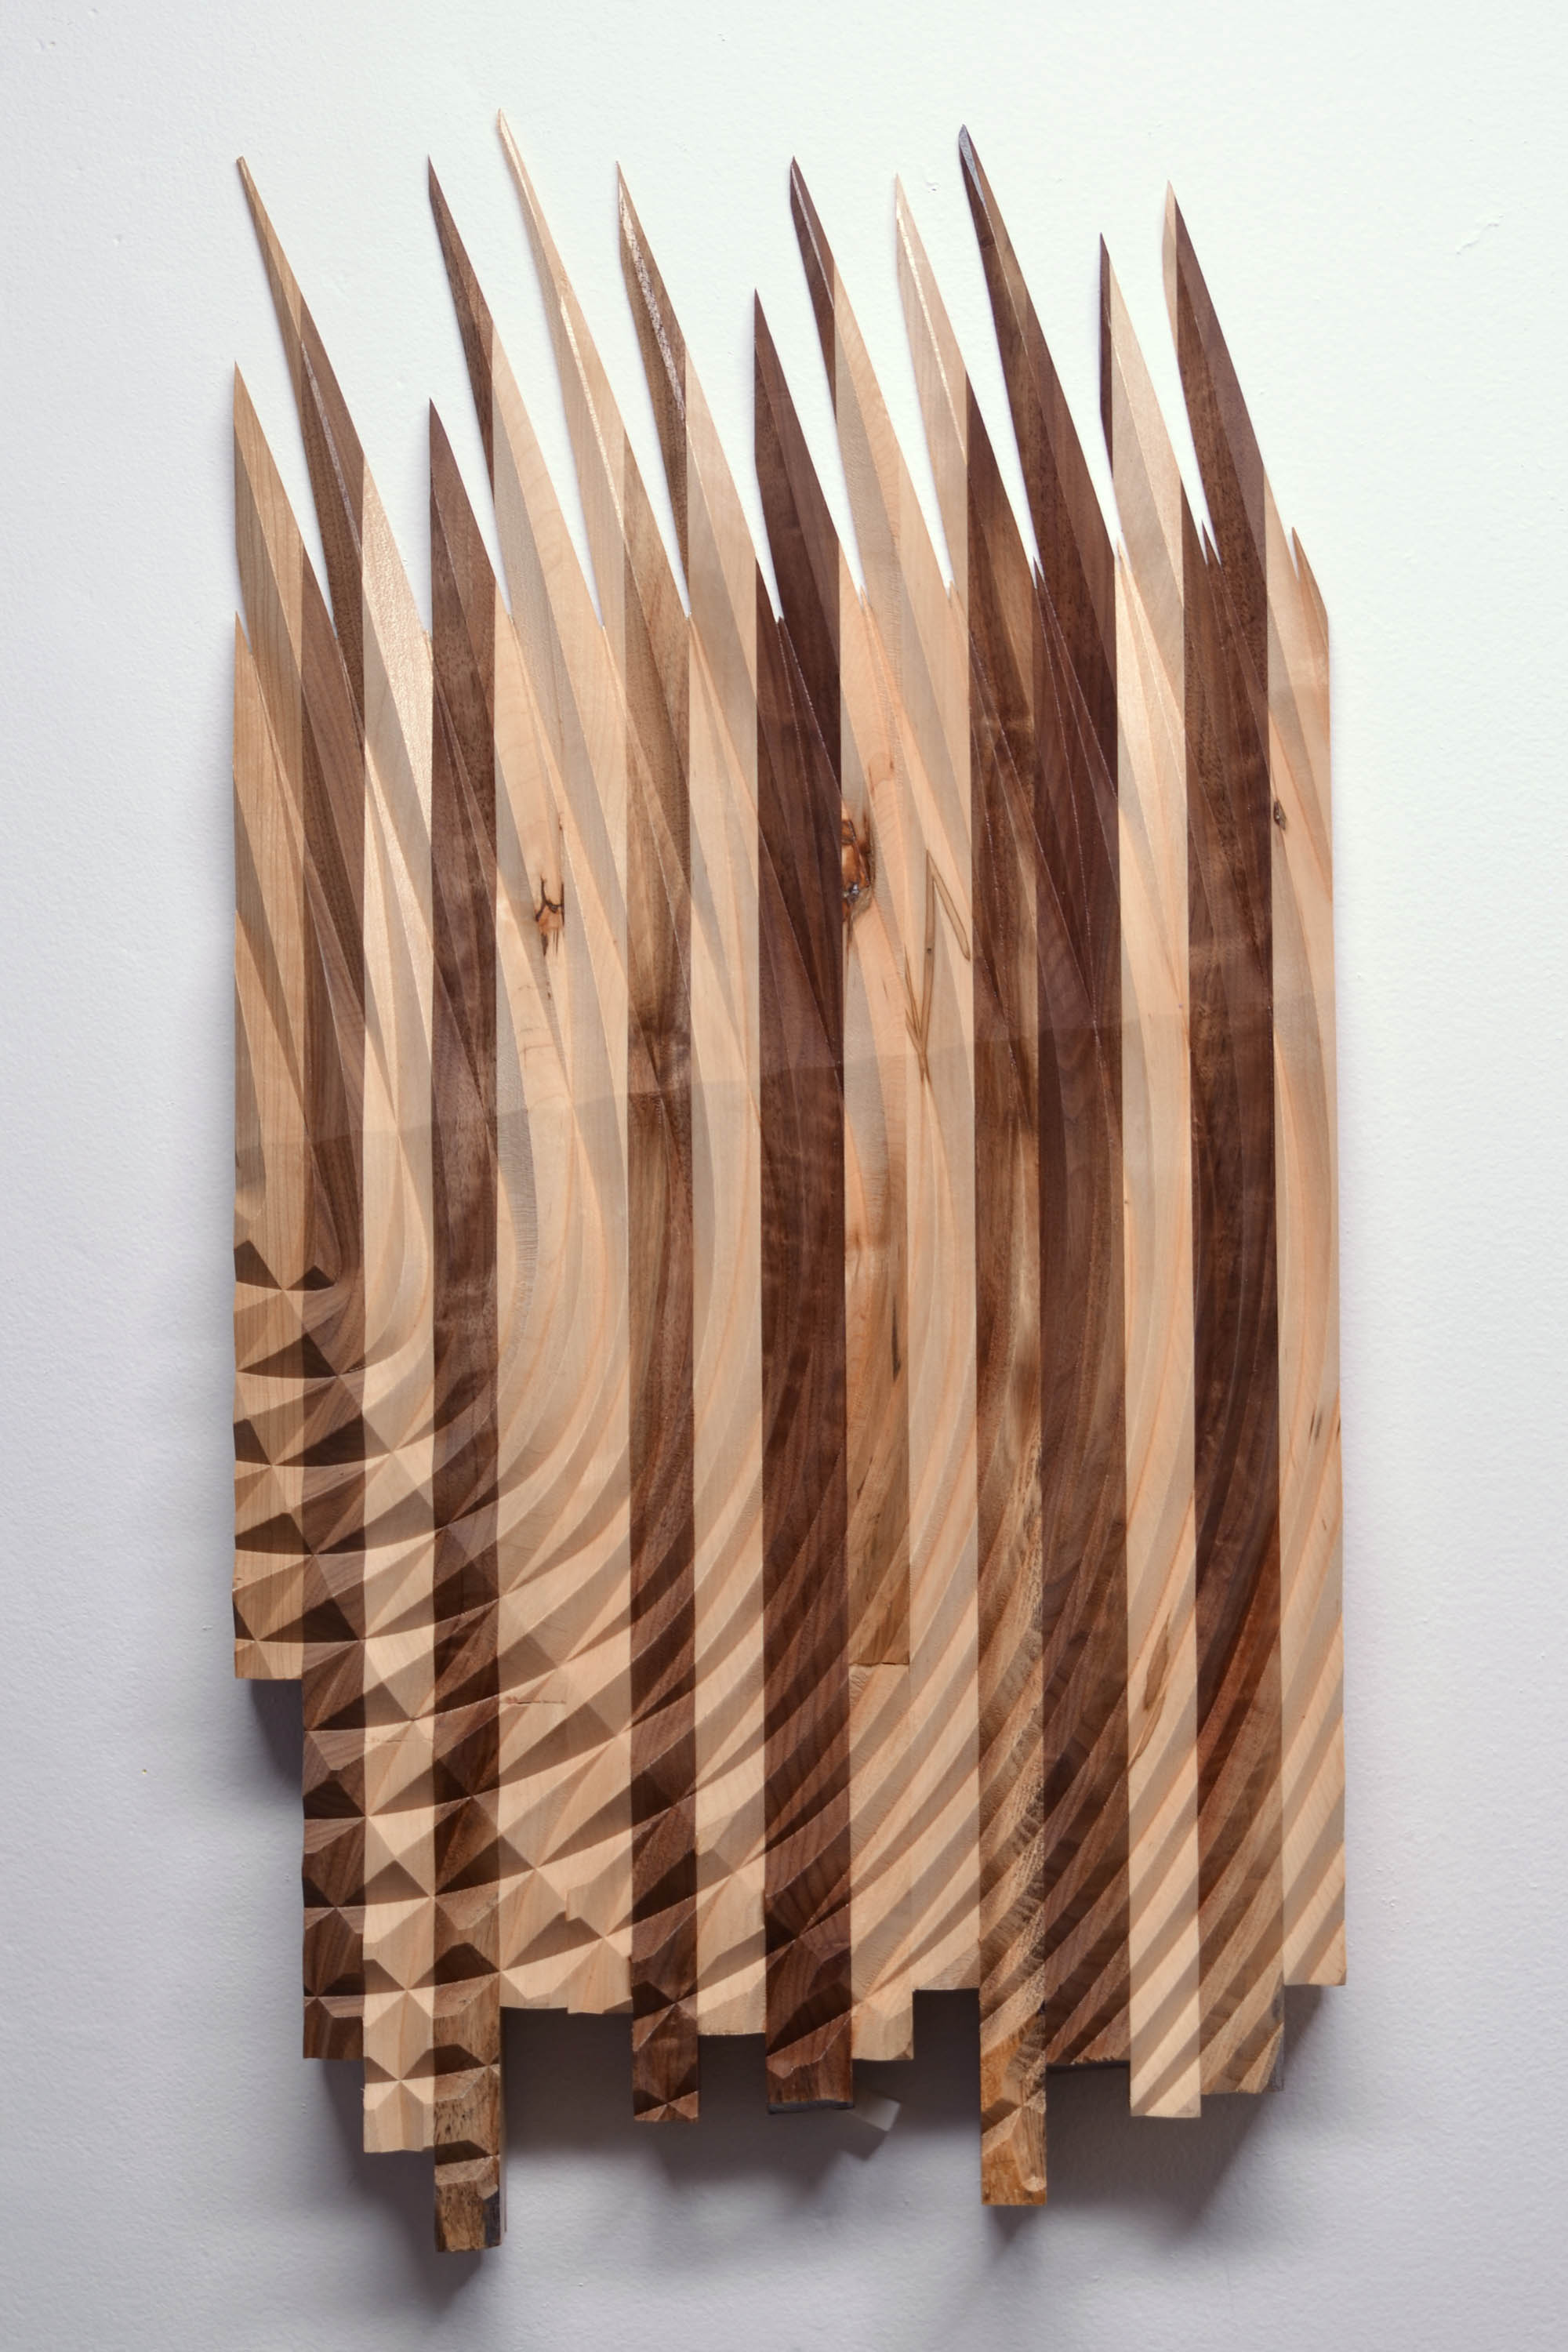 Working in Wood - Wood sculptures by Michael Mittelman